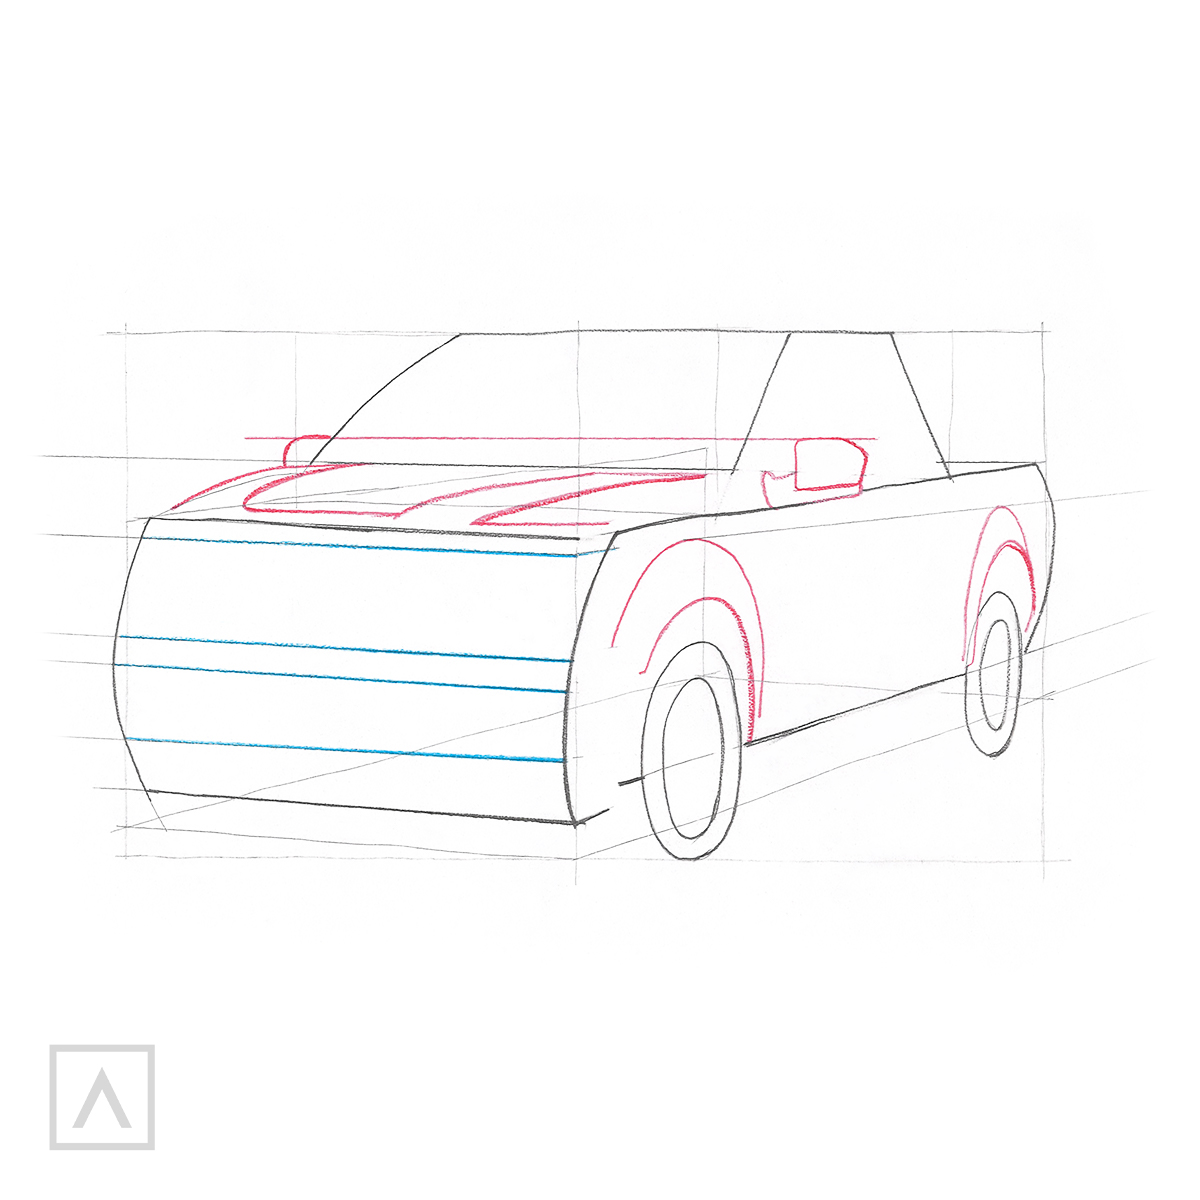 How to Draw a Car - Step 6